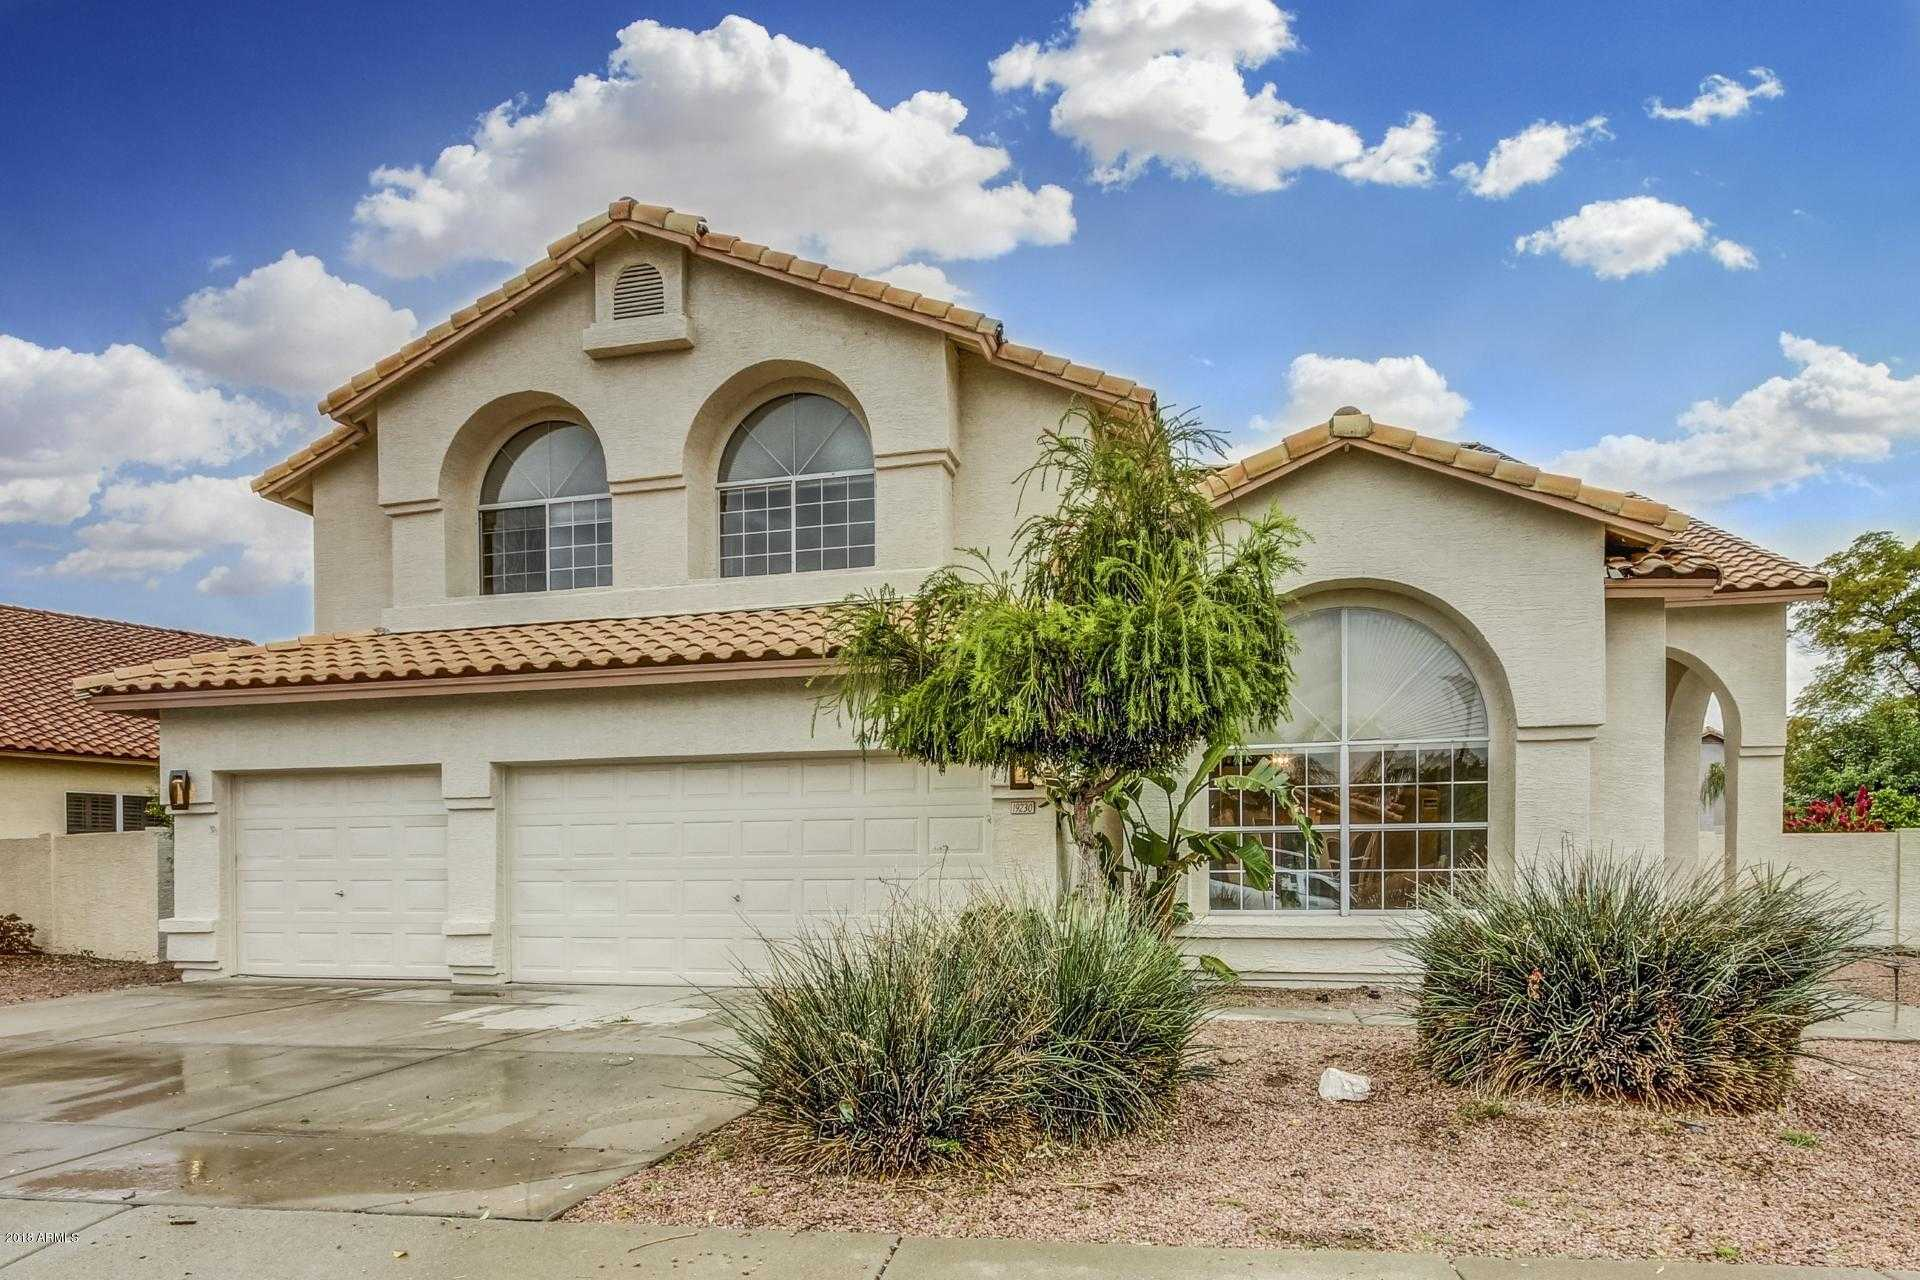 $446,500 - 5Br/3Ba - Home for Sale in Continental At Arrowhead Ranch, Glendale